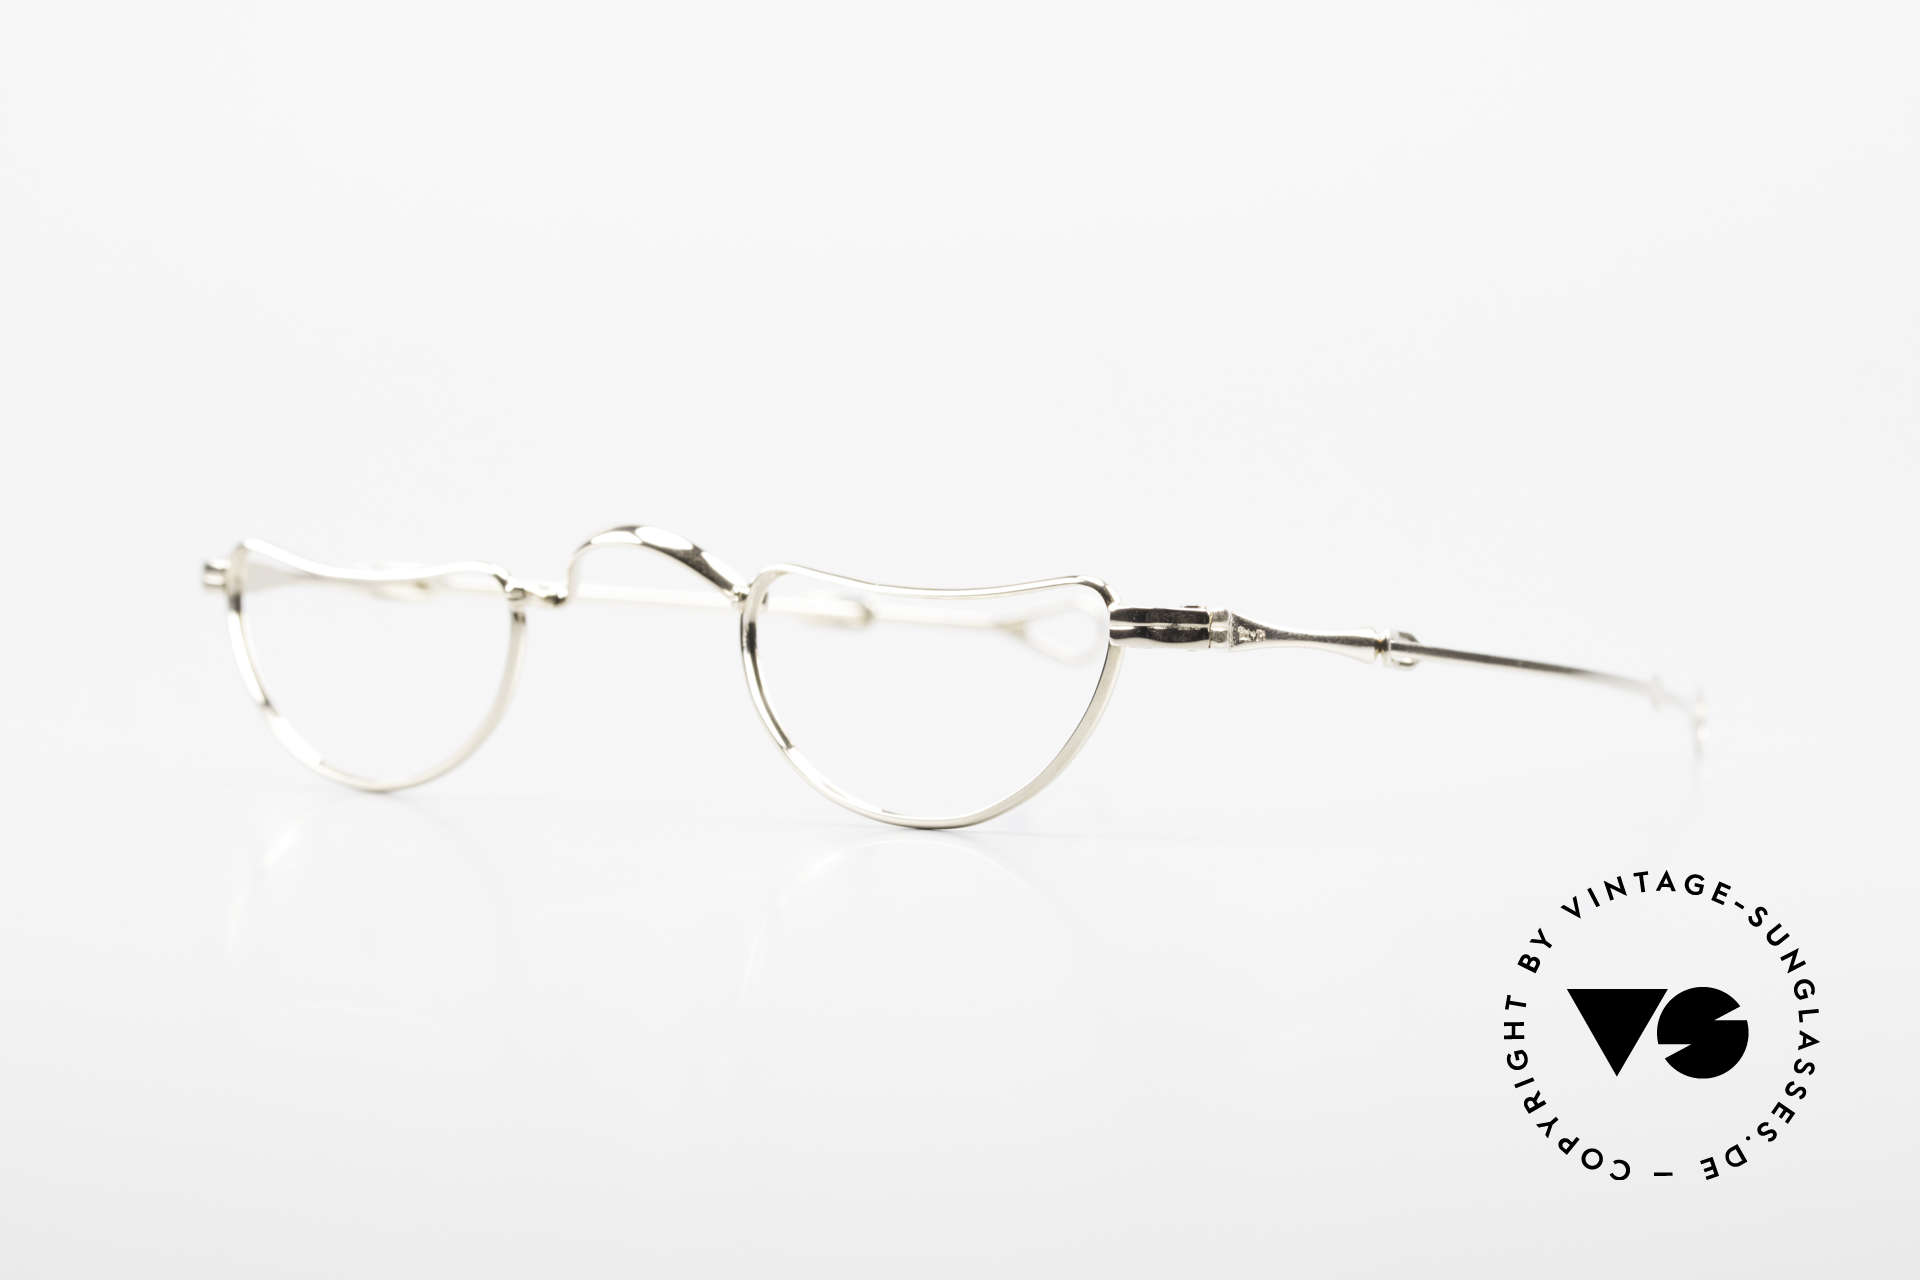 Lunor Goldbrille Solid Gold Glasses 16ct Frame, the frame is made from 16ct GOLD and 2ct PLATINUM, Made for Men and Women